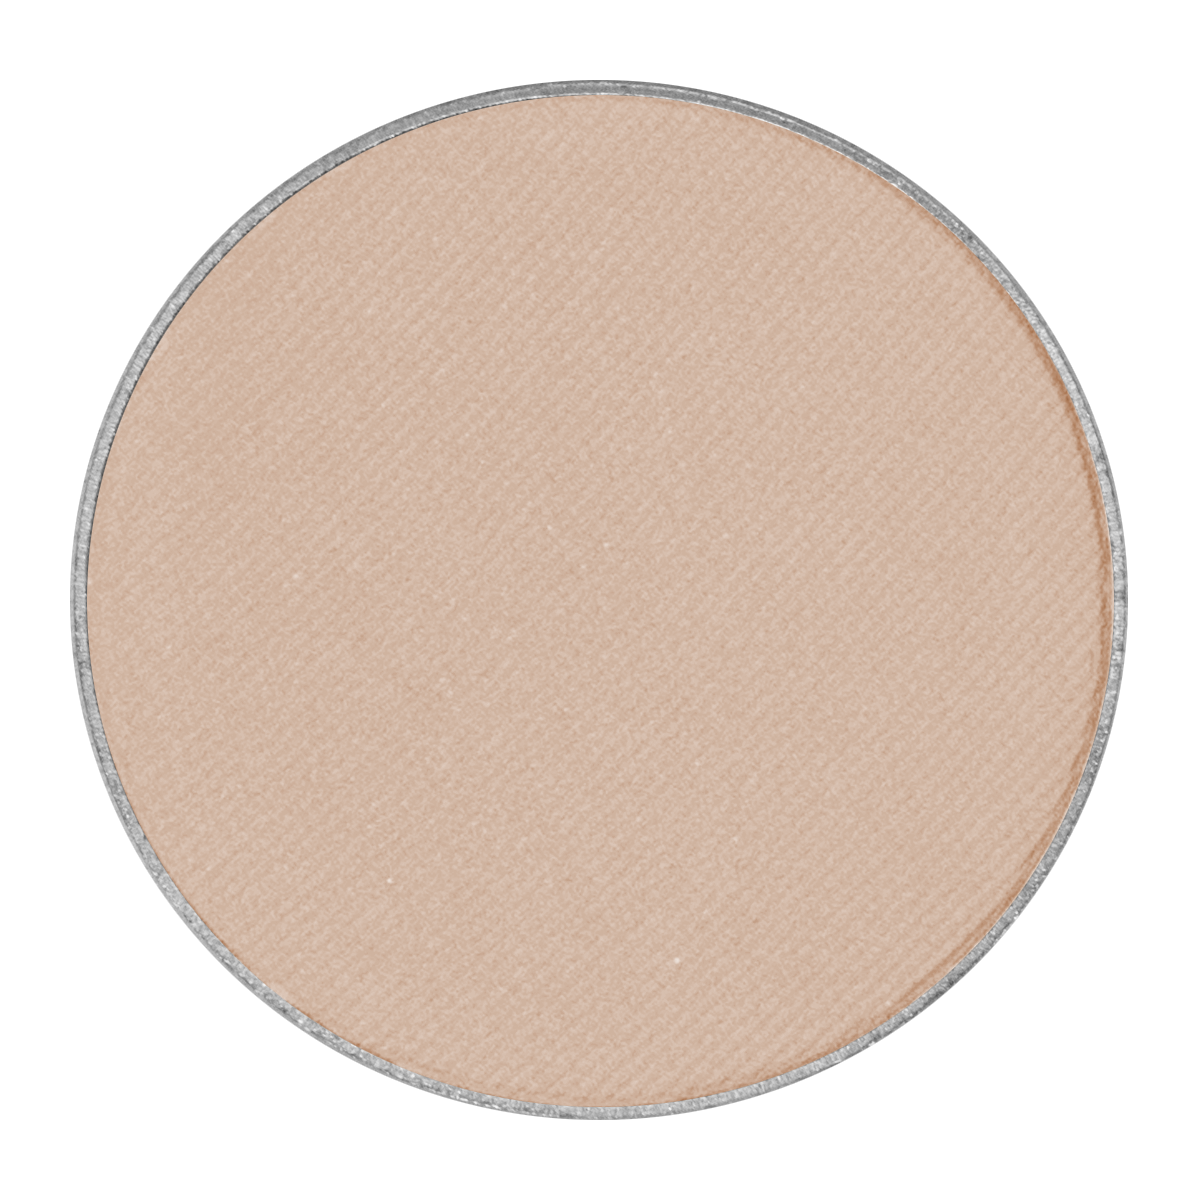 CREME - Eye Shadow (matte) - Jonny Cosmetics